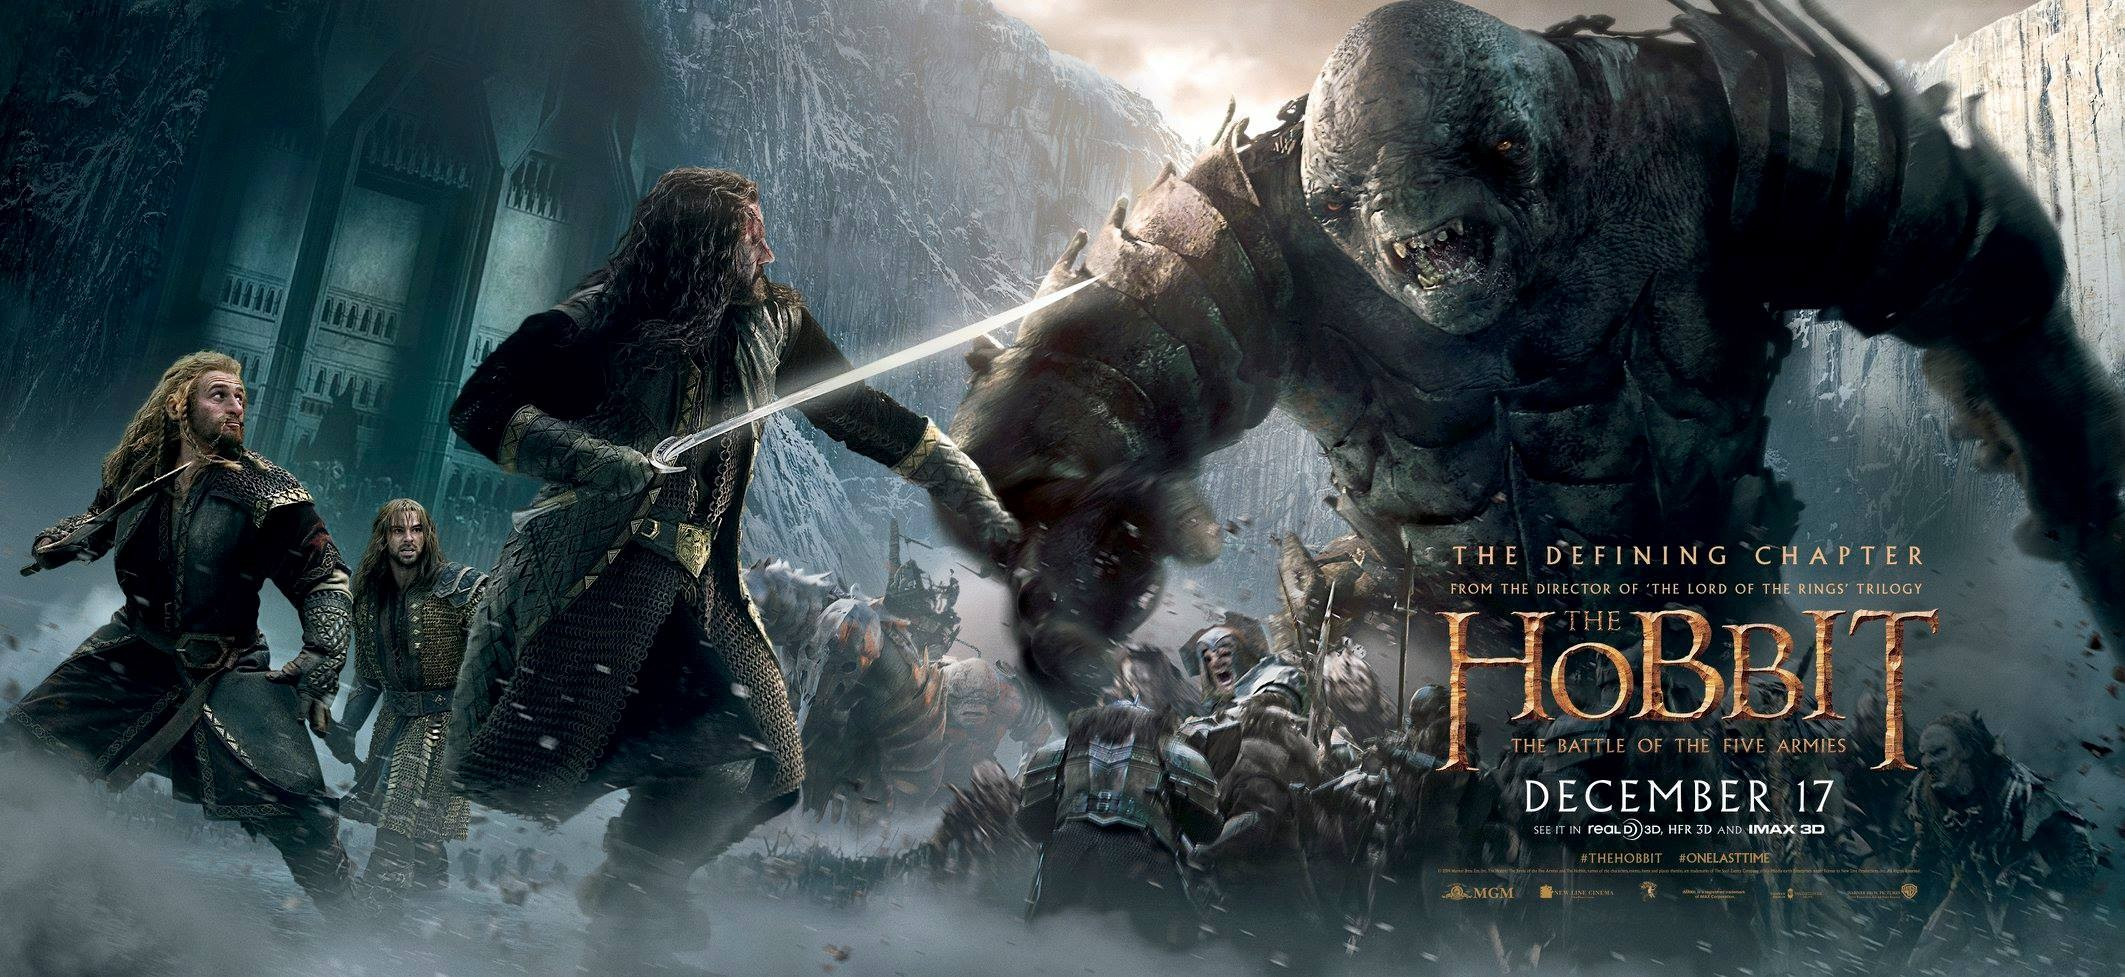 The Hobbit The Battle of the Five Armies-PROMO BANNER XXLG-05NOVEMBRO2014-01